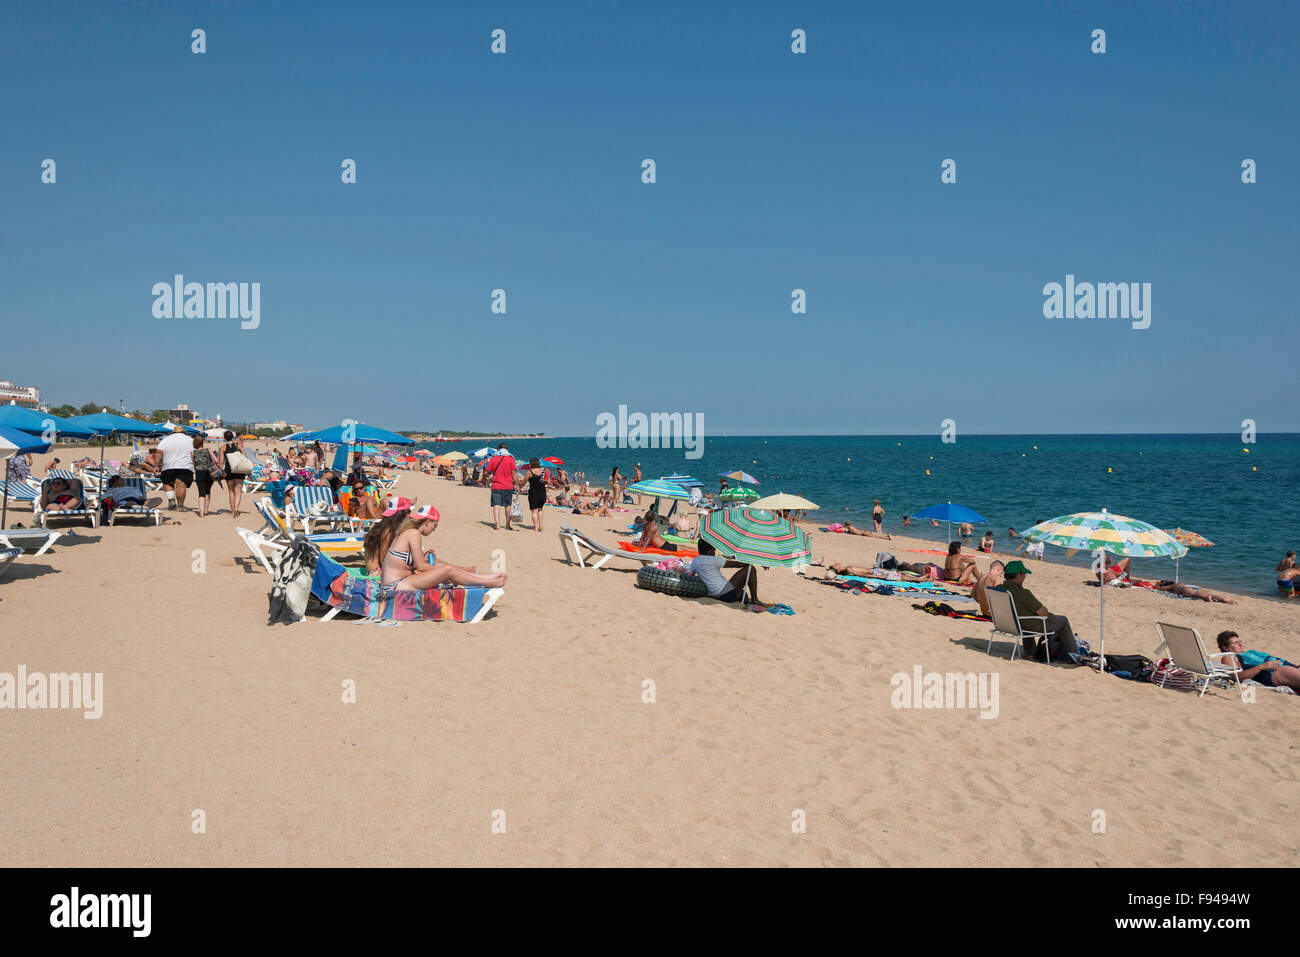 Main Beach, Malgrat de Mar, Costa del Maresme, Province of Barcelona, Catalonia, Spain - Stock Image